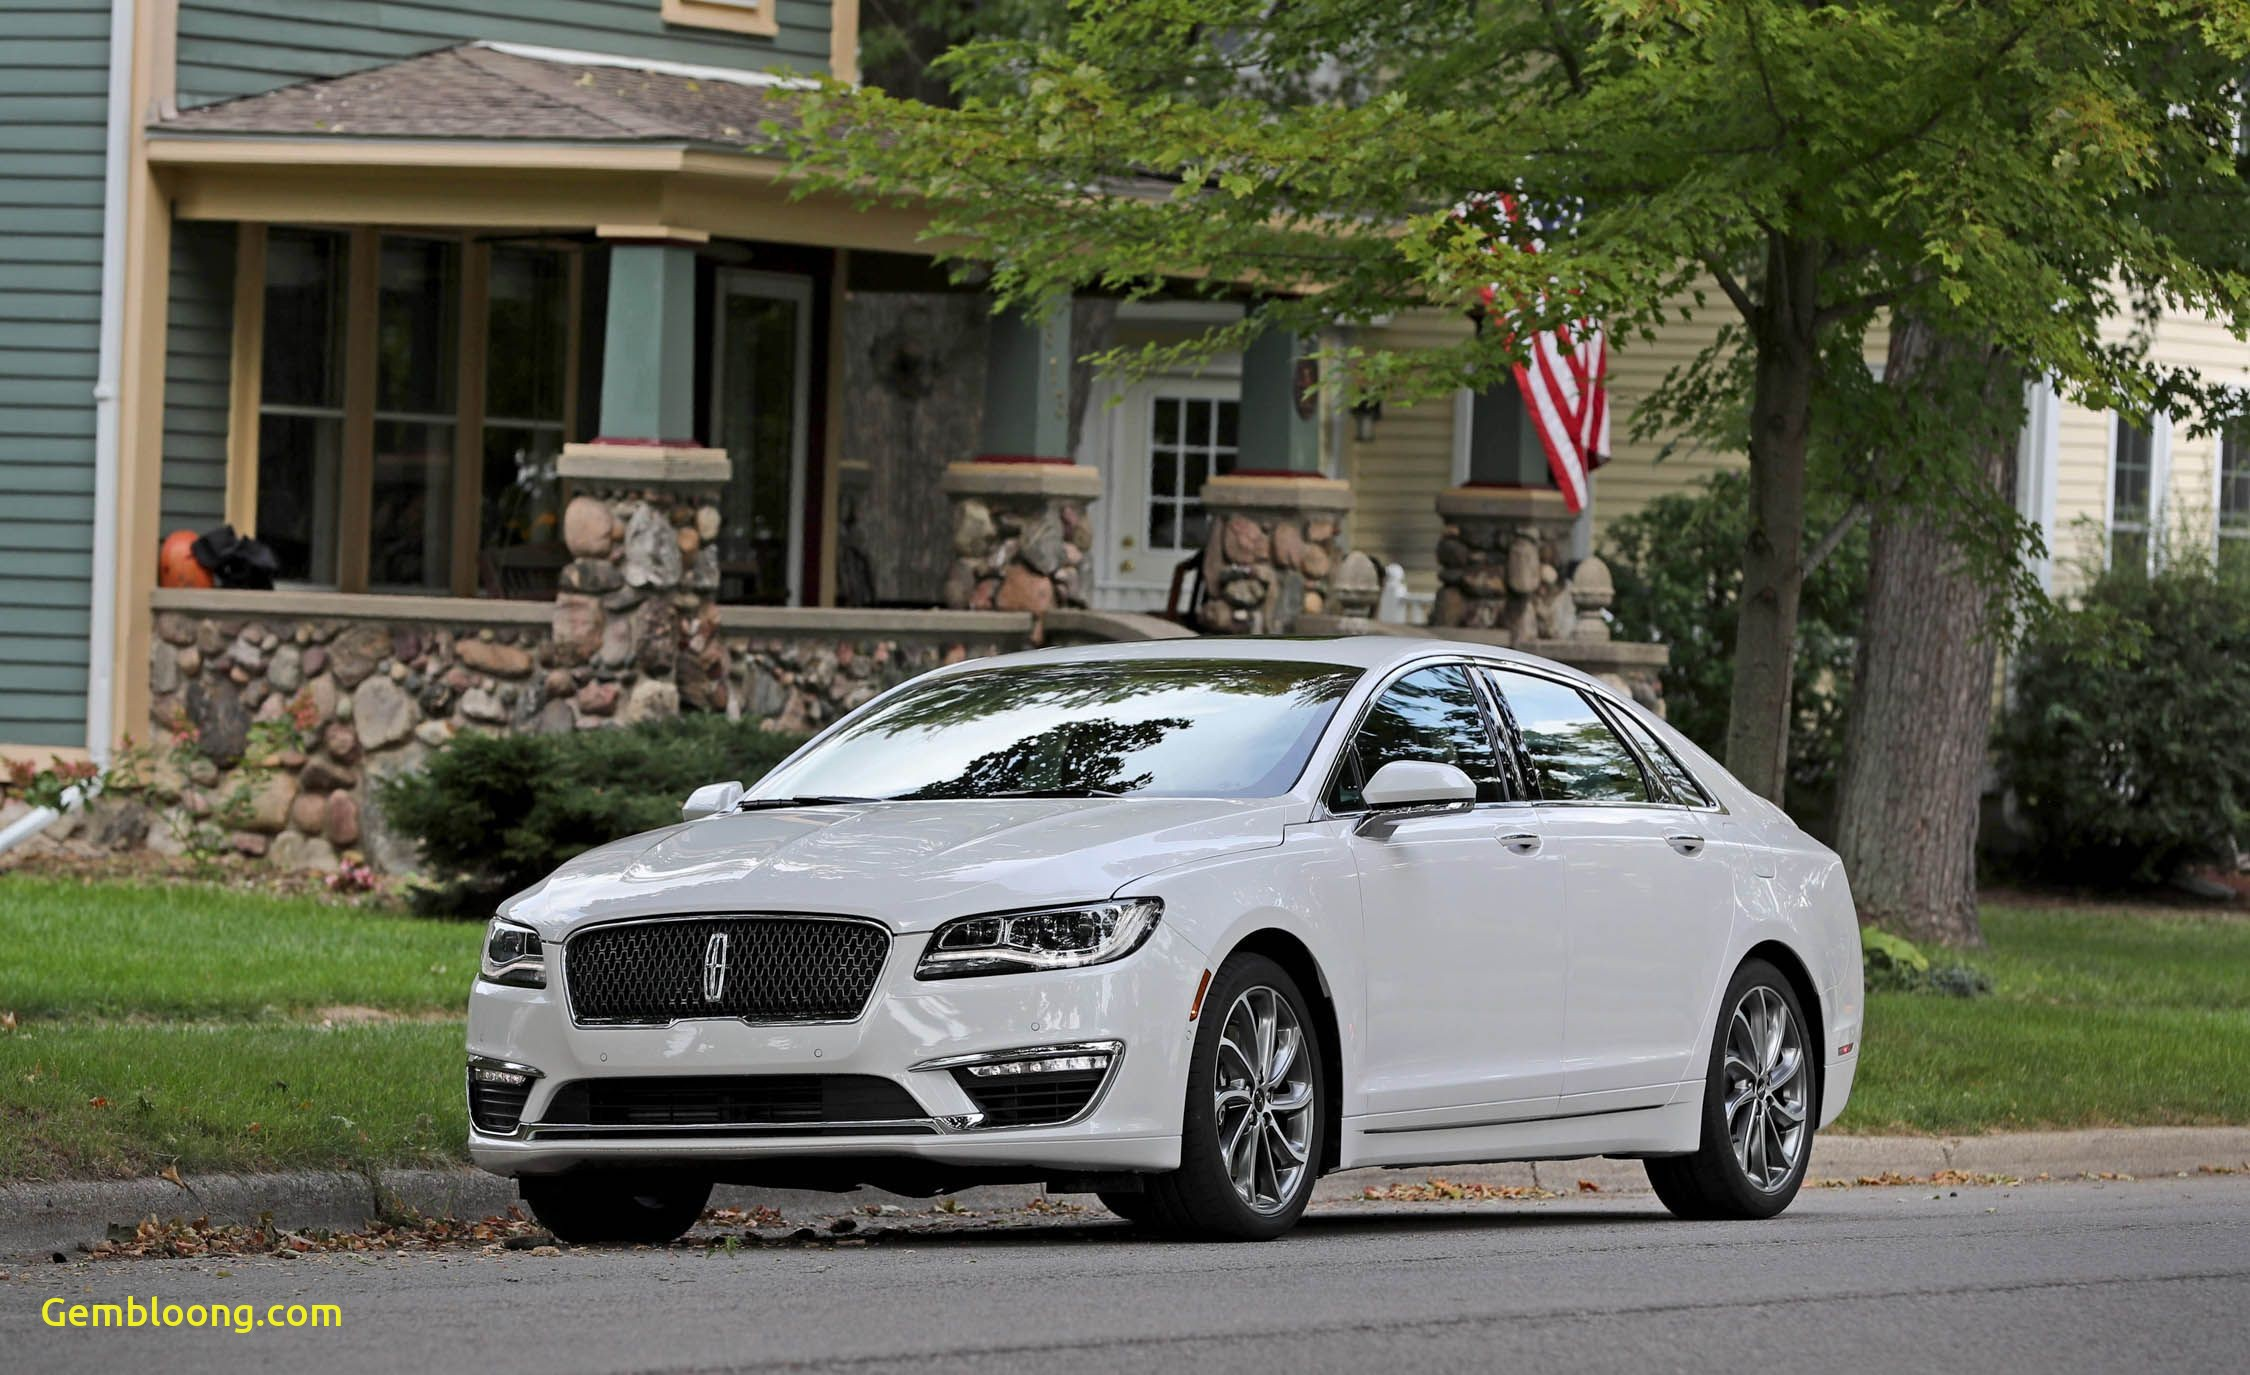 2013 Lincoln Mkz Unique 2019 Lincoln Mkz Review Pricing and Specs